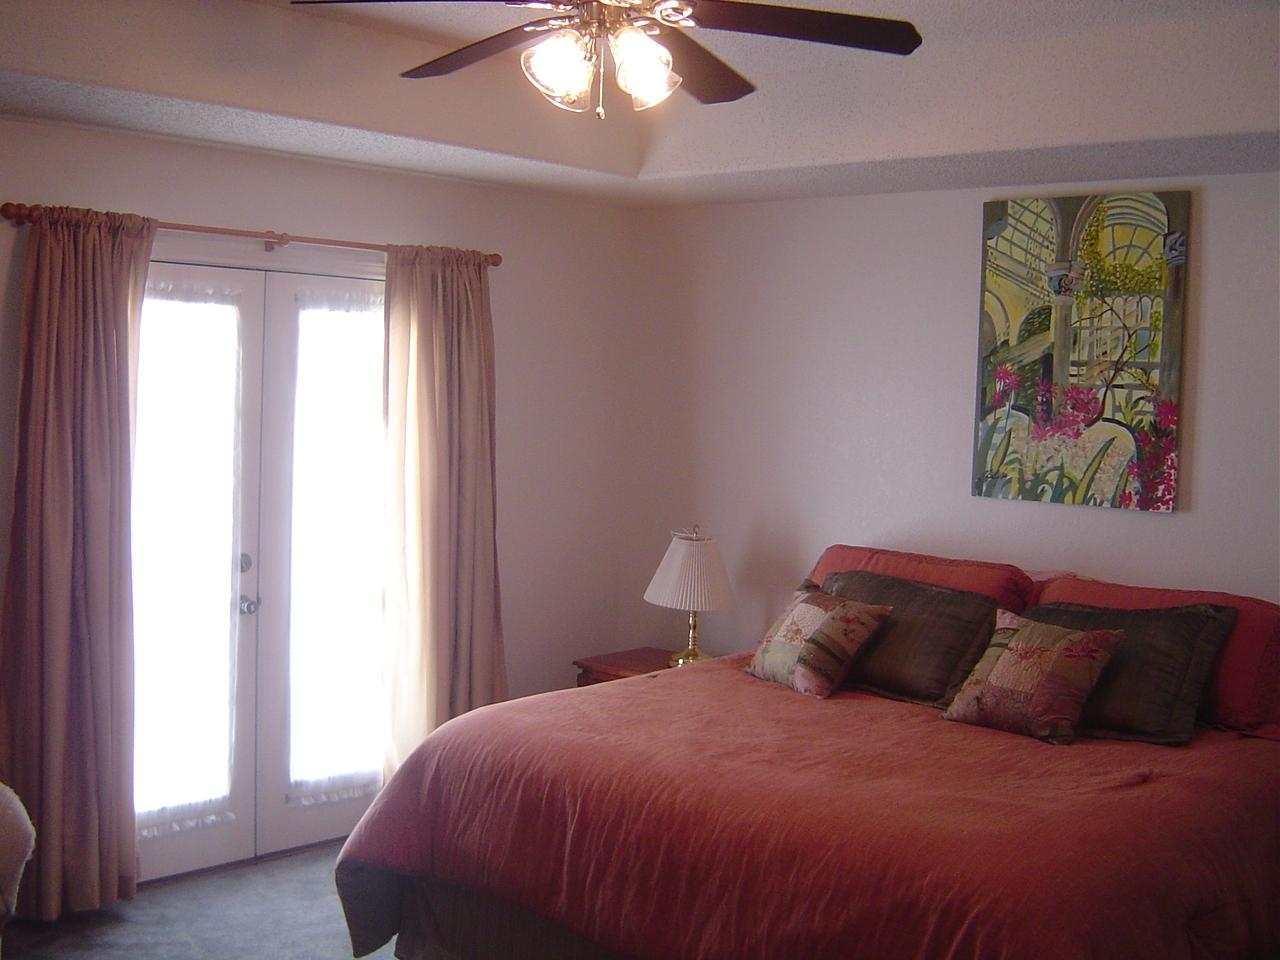 Unit B Master Bedroom - King.JPG